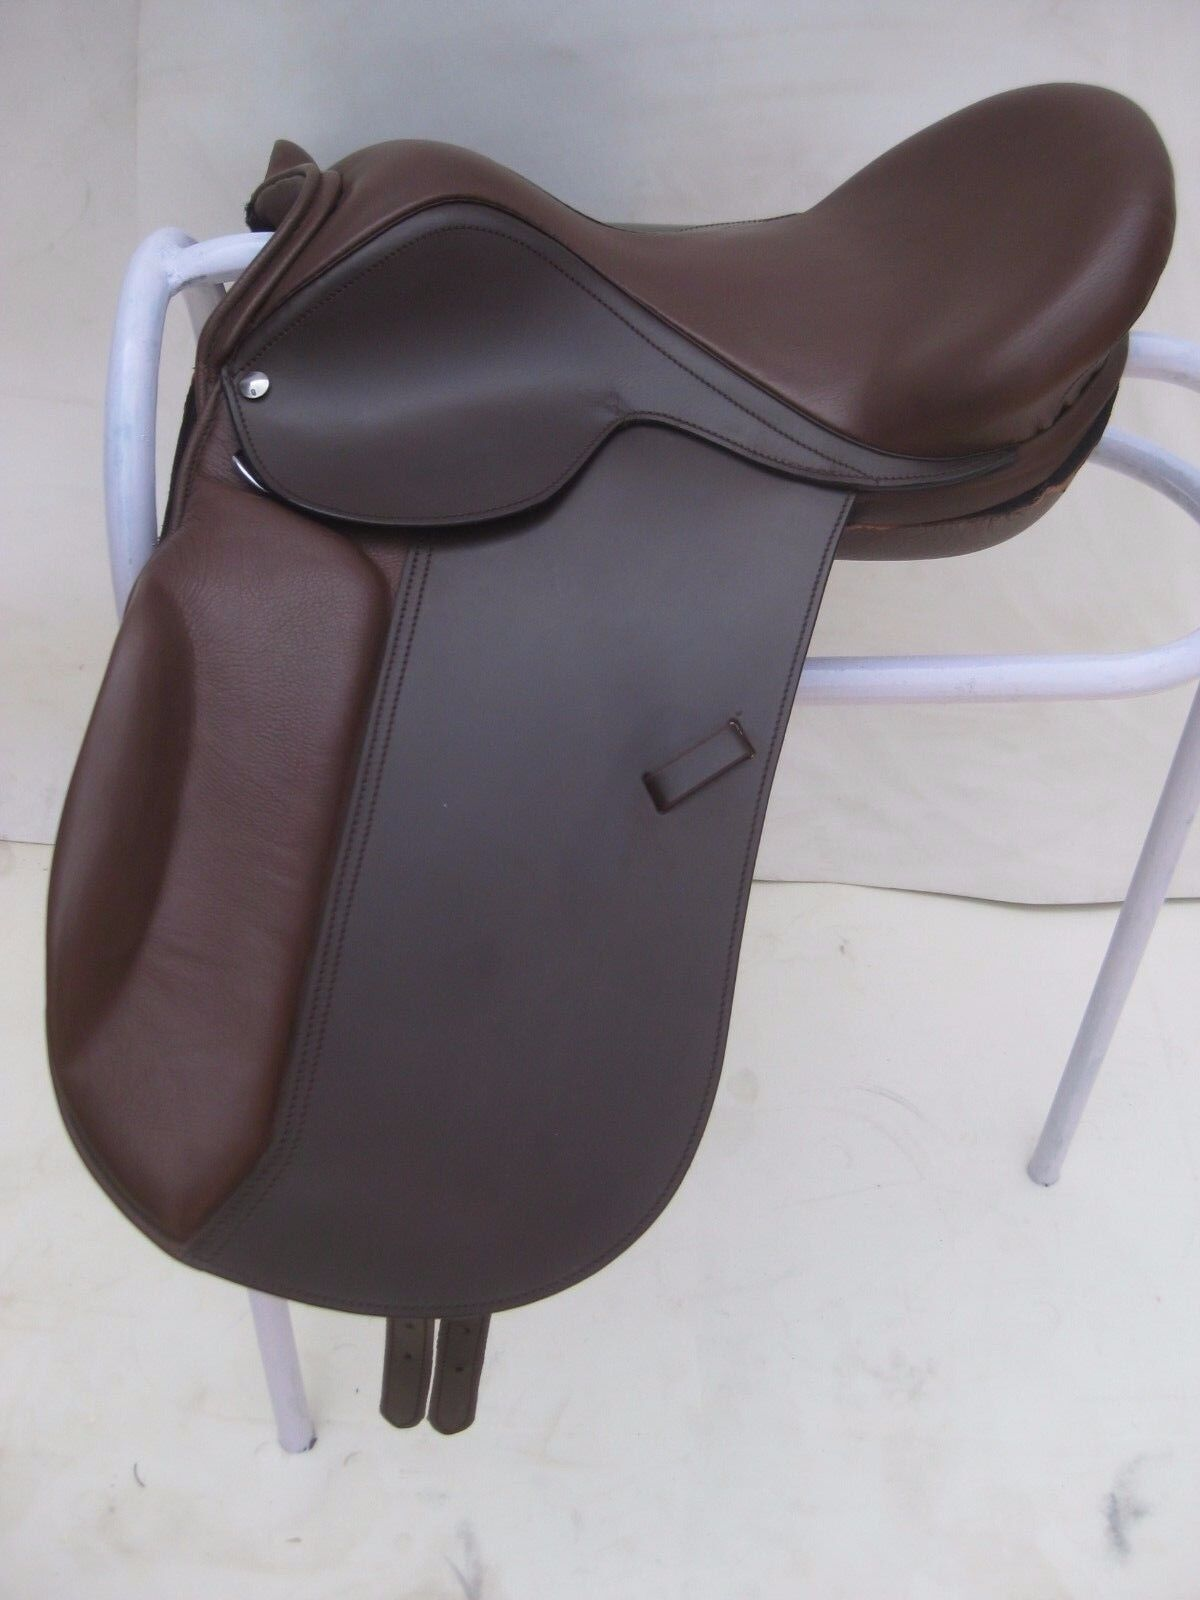 Leather  Dressage Treeless Saddle, Brown available in 9 size  with Accessories  in stock